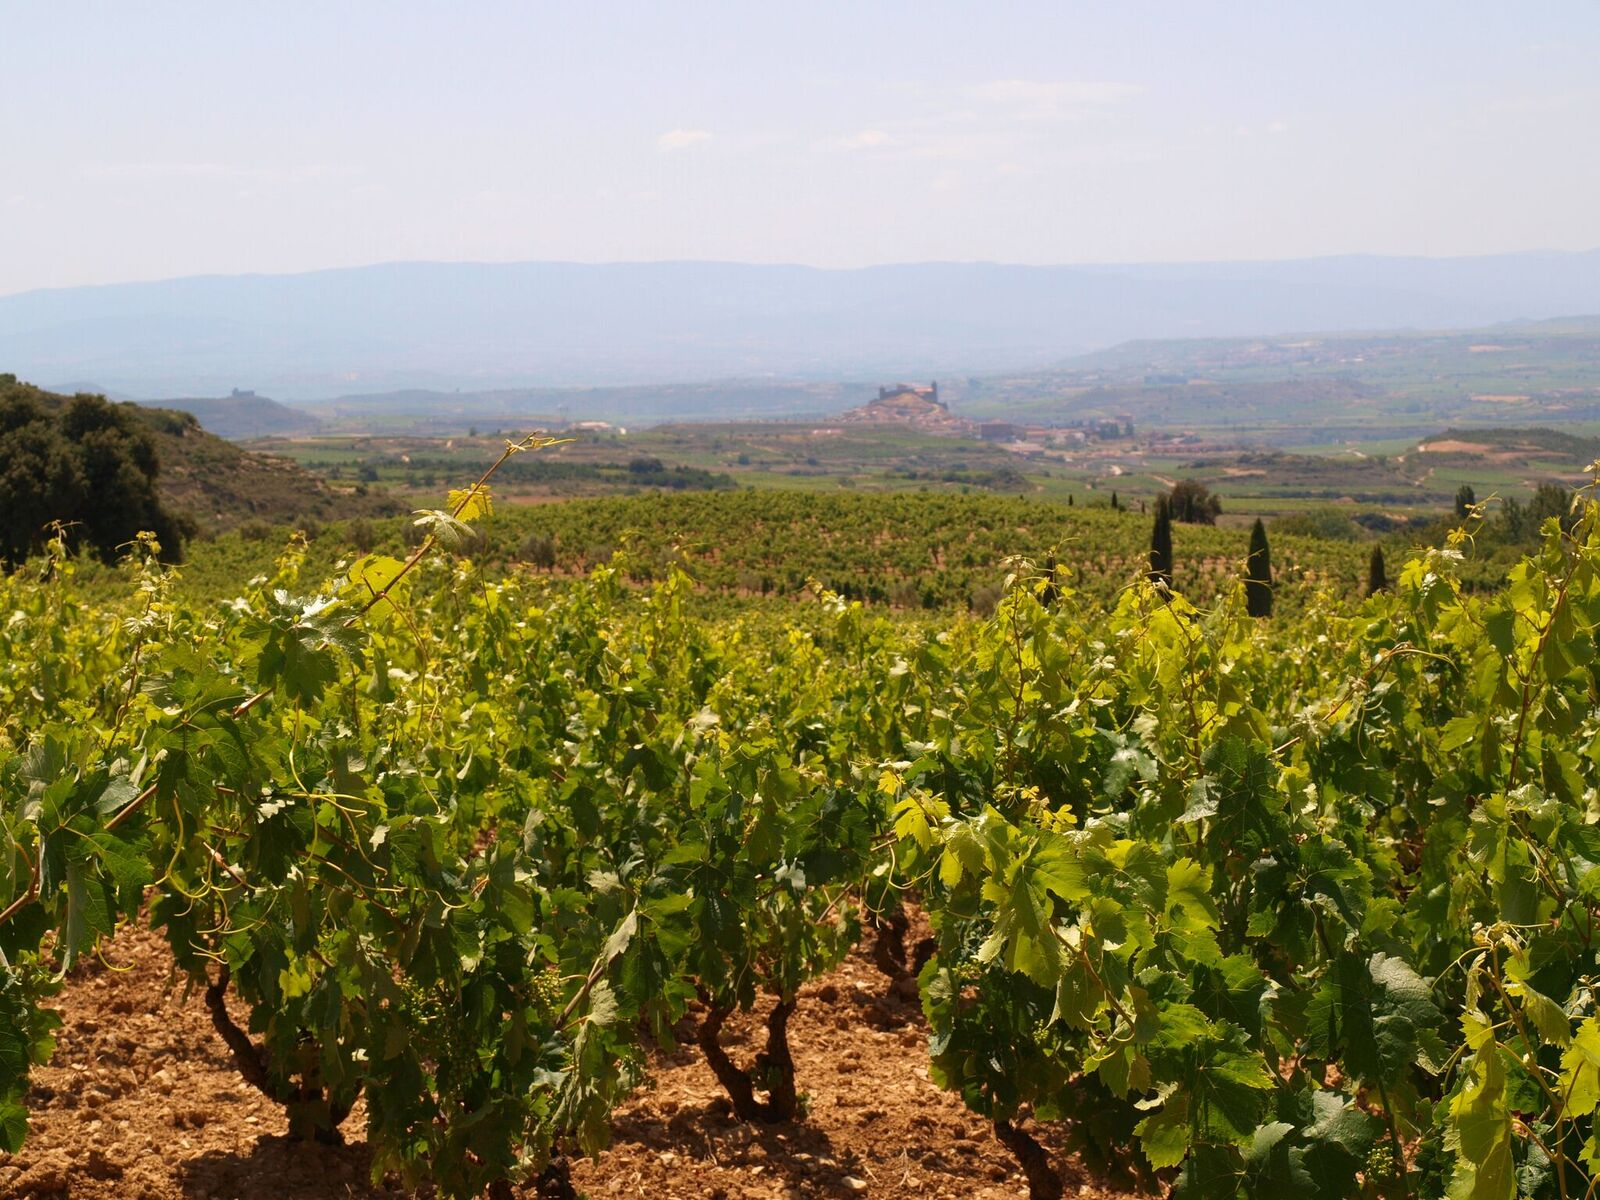 https://travelinspires.org/wp-content/uploads/2018/03/La-Rioja-Spain-travel-guide-©Thabuca-Wine-Tours-Rioja_preview.jpeg